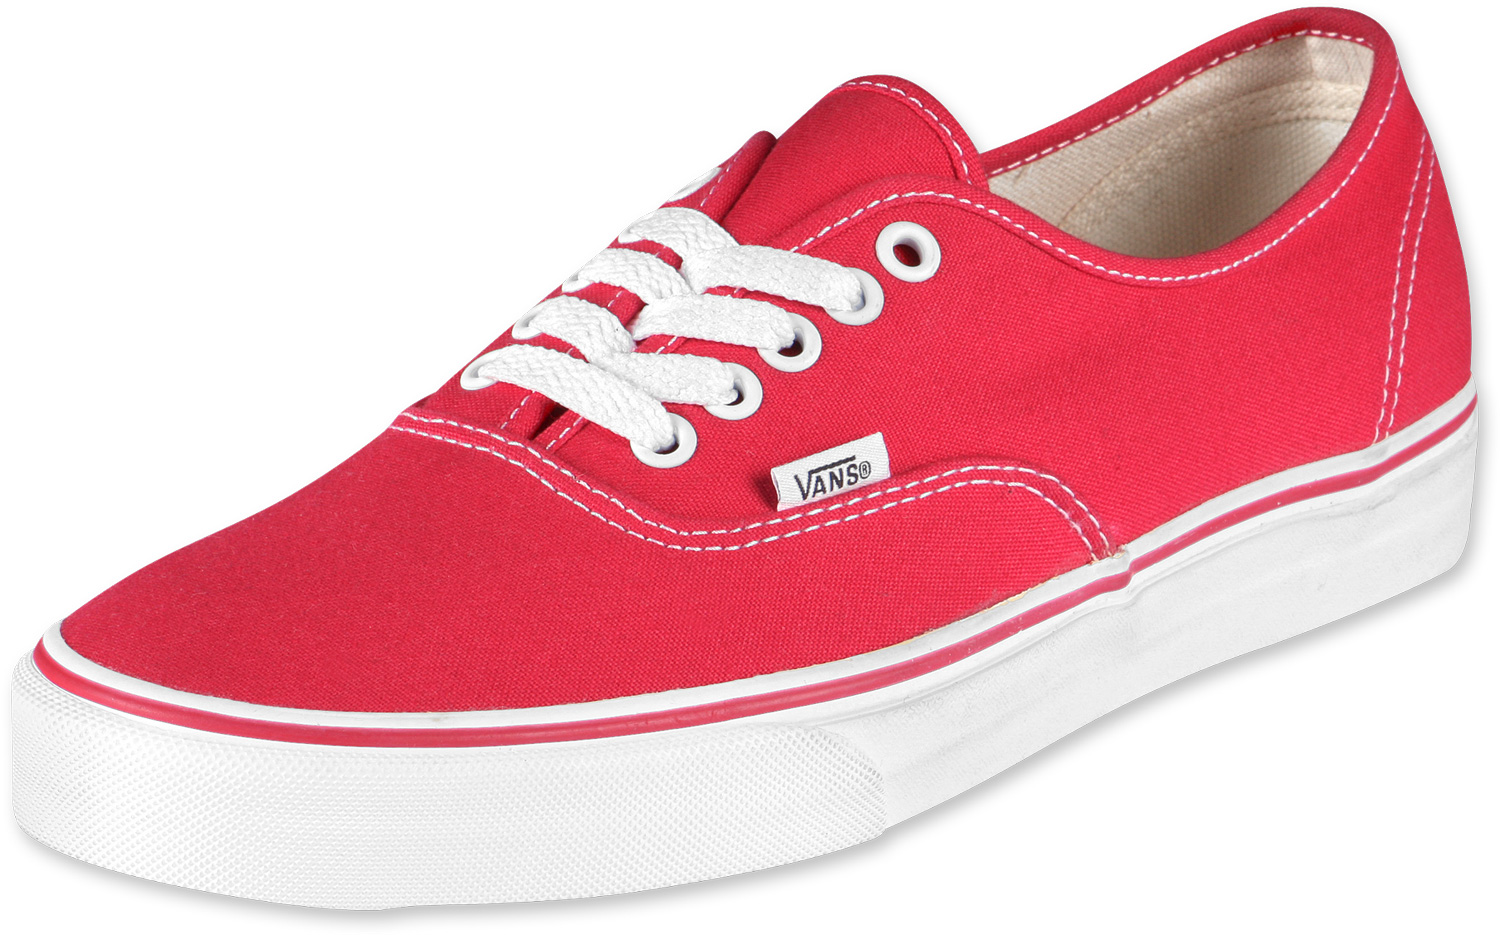 Vans Authentic - Modello 1040